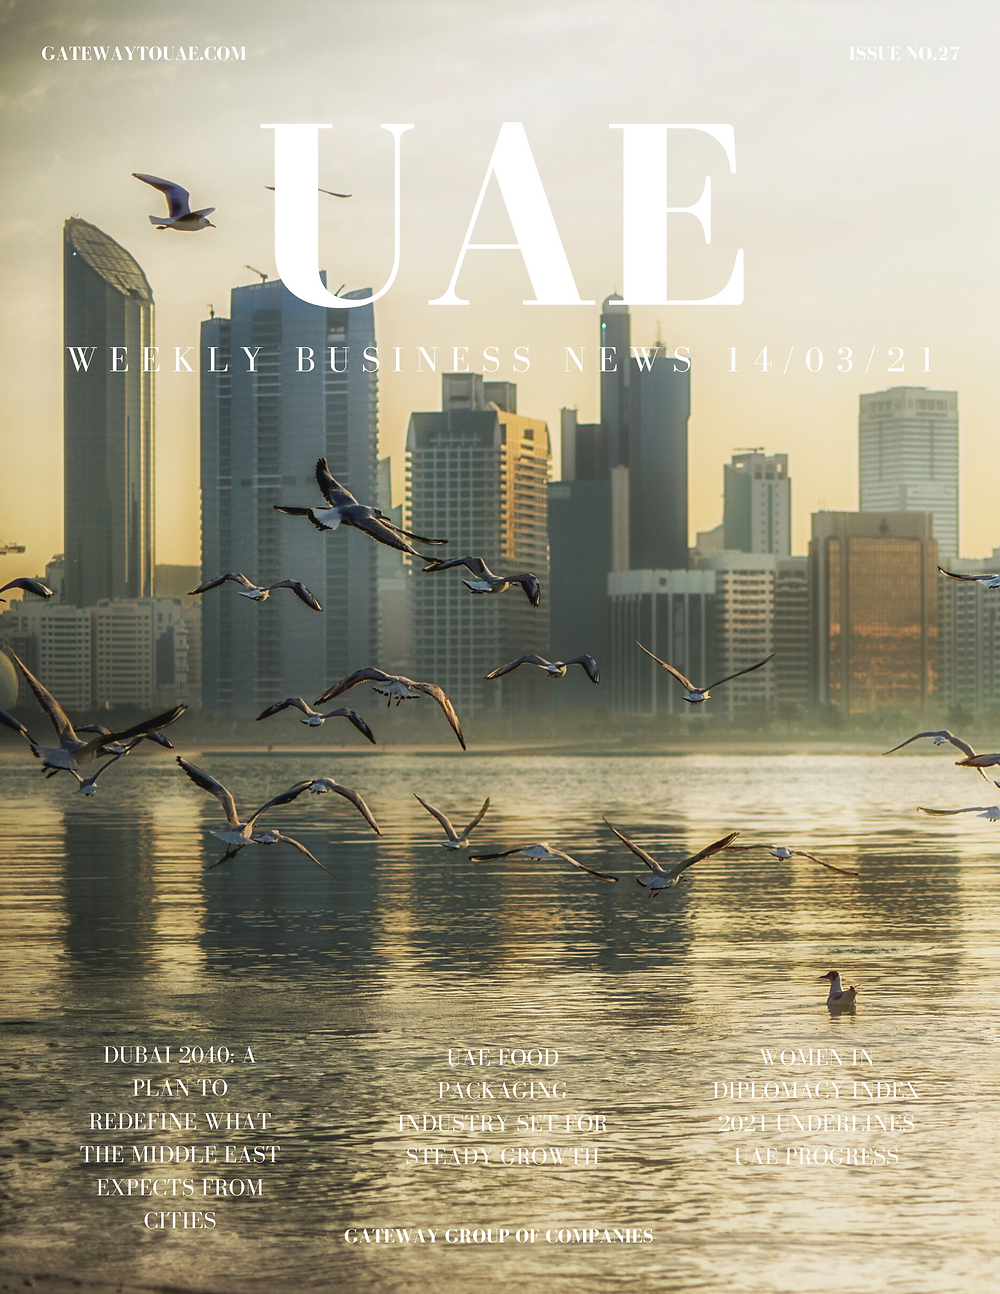 UAE weekly business news headlines 14th March 2021 Issue 27 Gateway Group Of Companies Abu Dhabi Dubai weekly magazine company formation business setup local sponsor service agent visas company formation authority